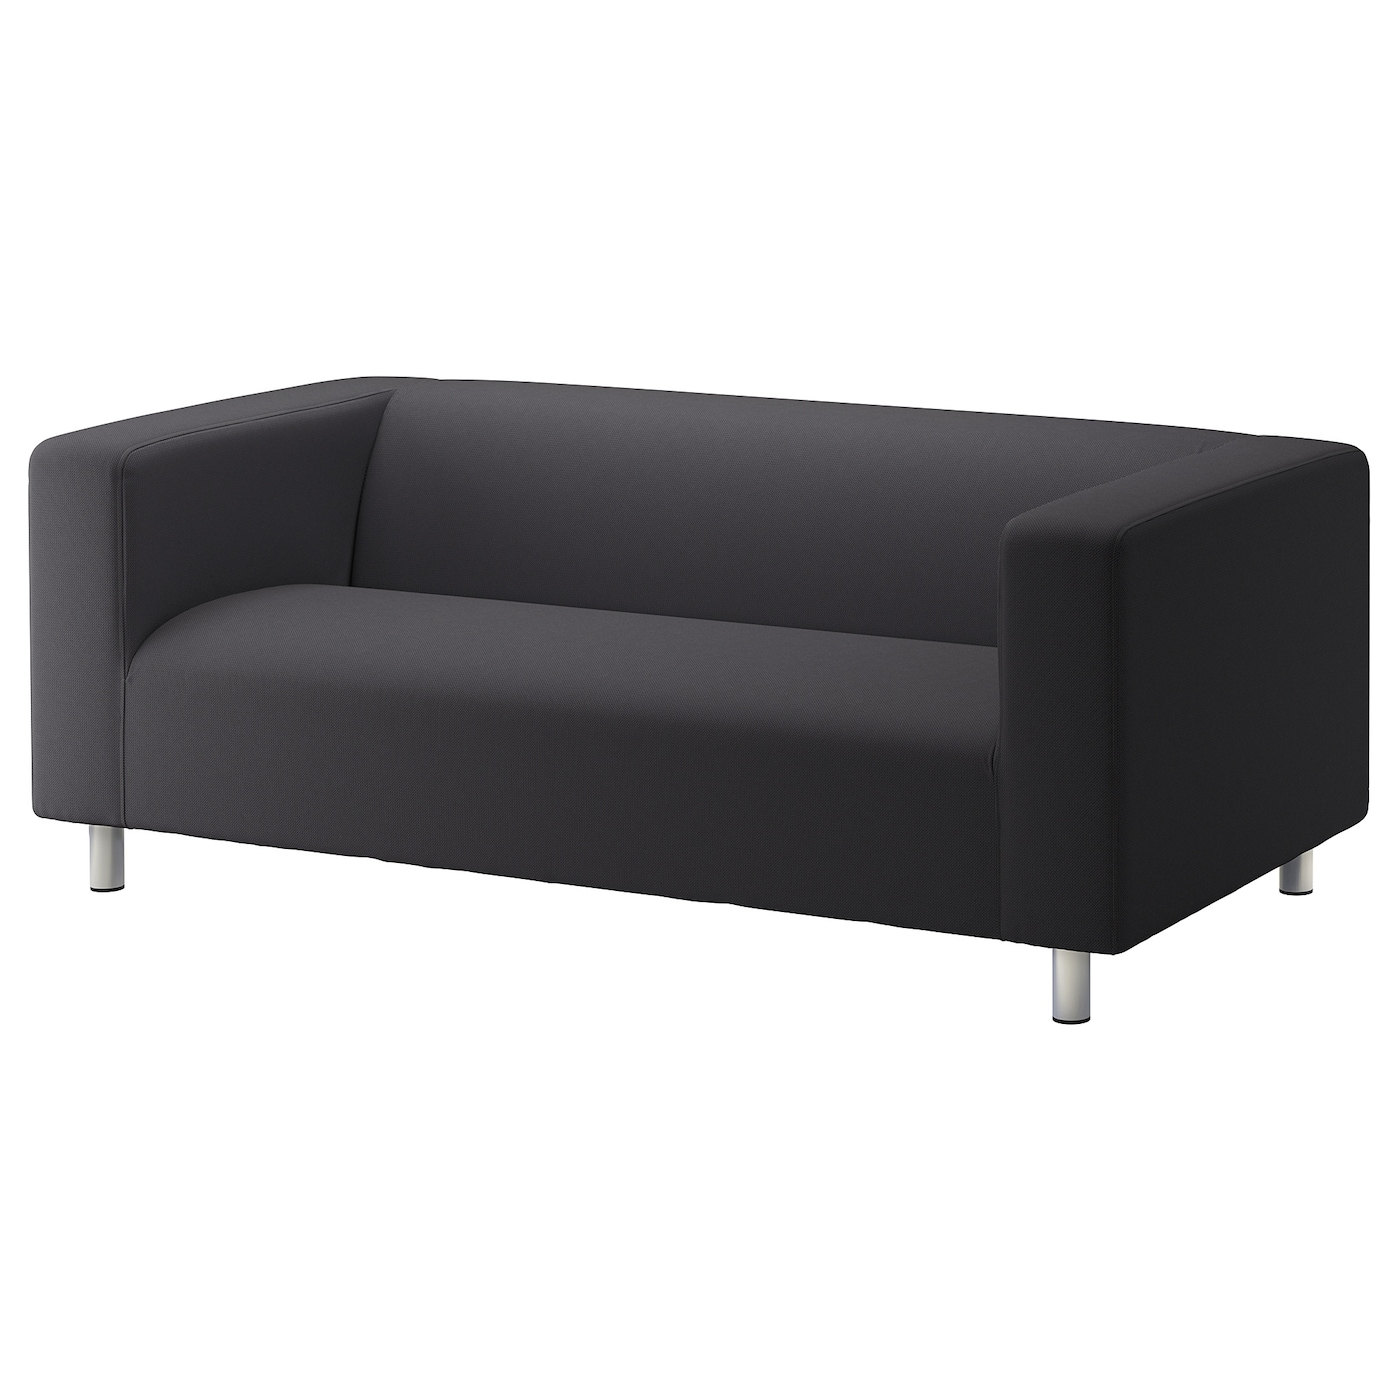 IKEA KLIPPAN 2-seat sofa The cover is easy to keep clean since it is removable and machine washable.